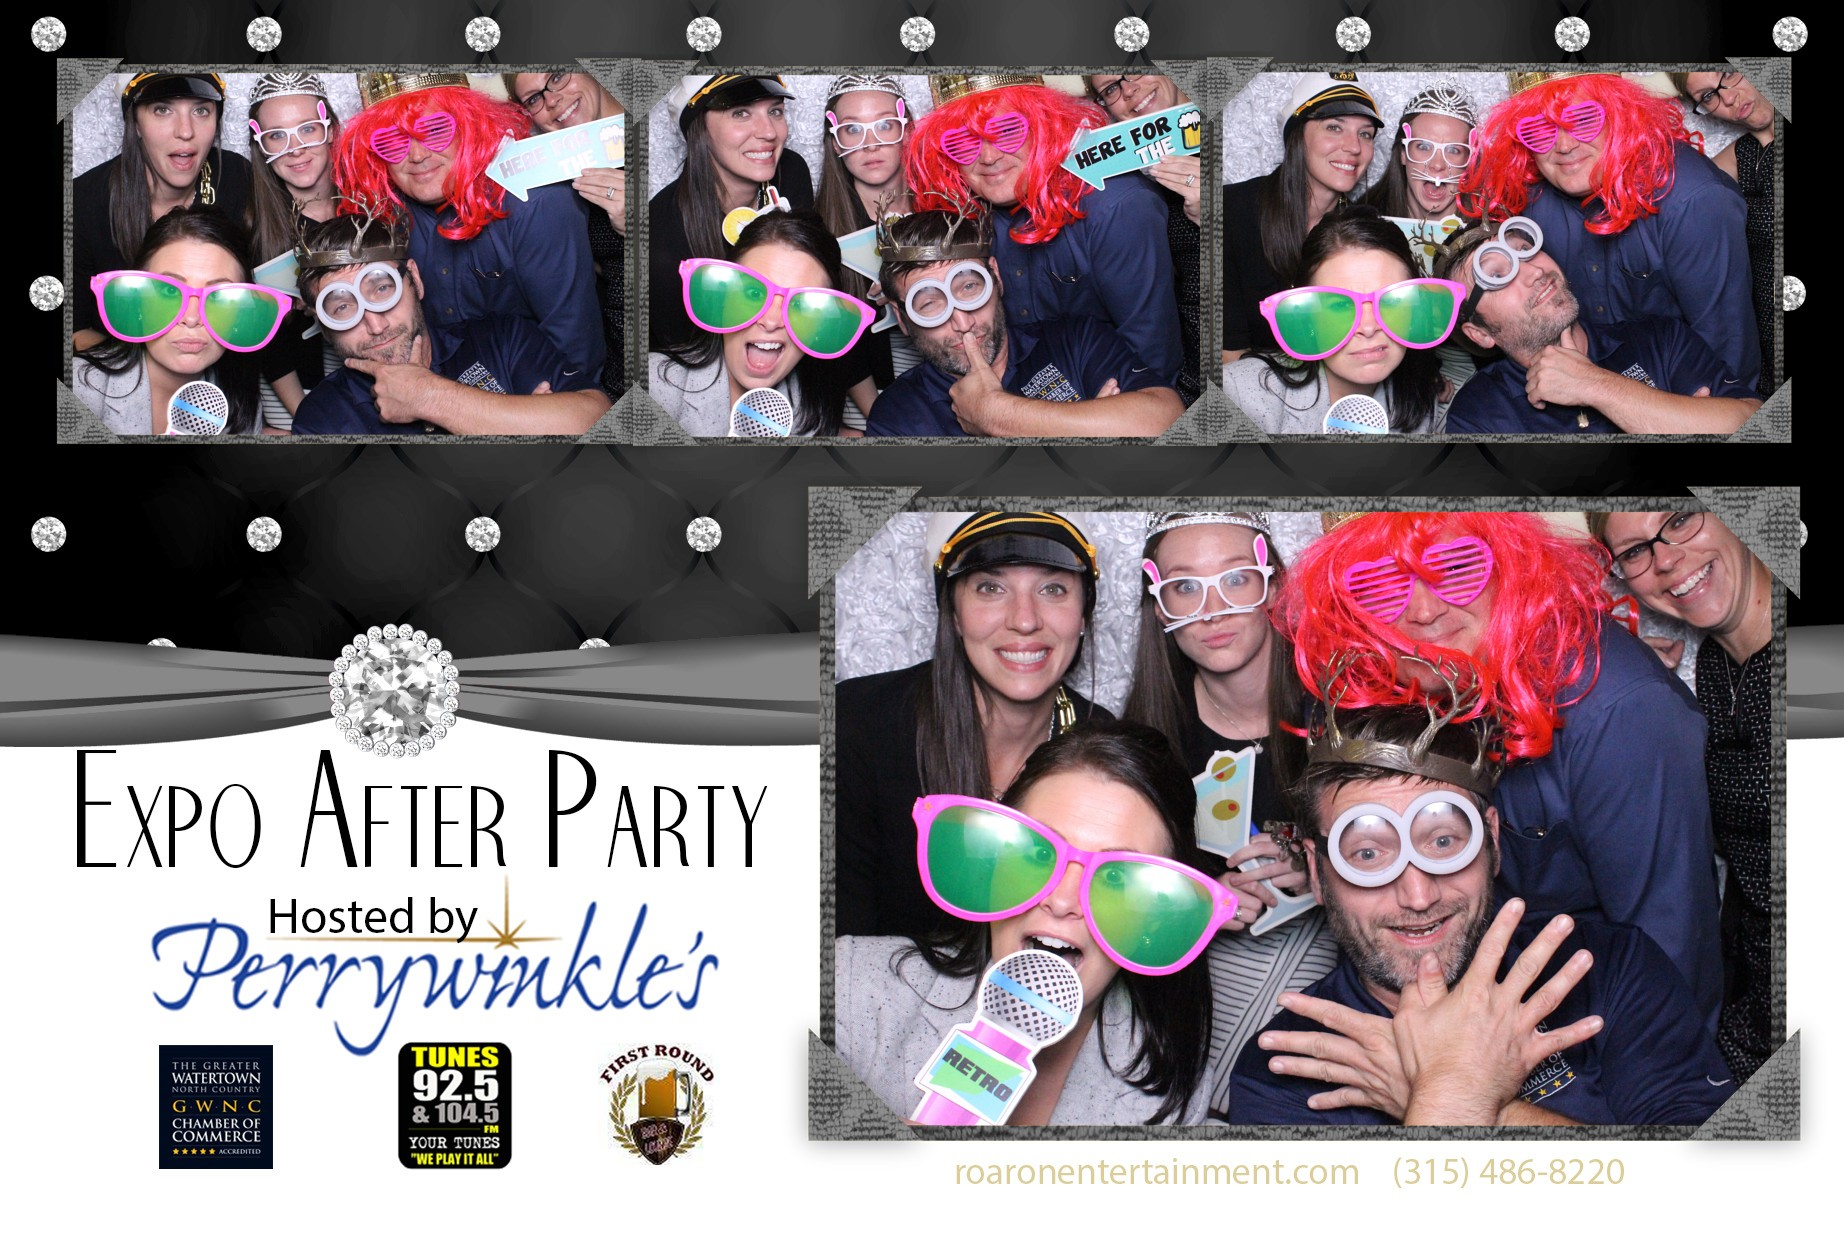 Watertown Photo booth hosted by perrywinkles